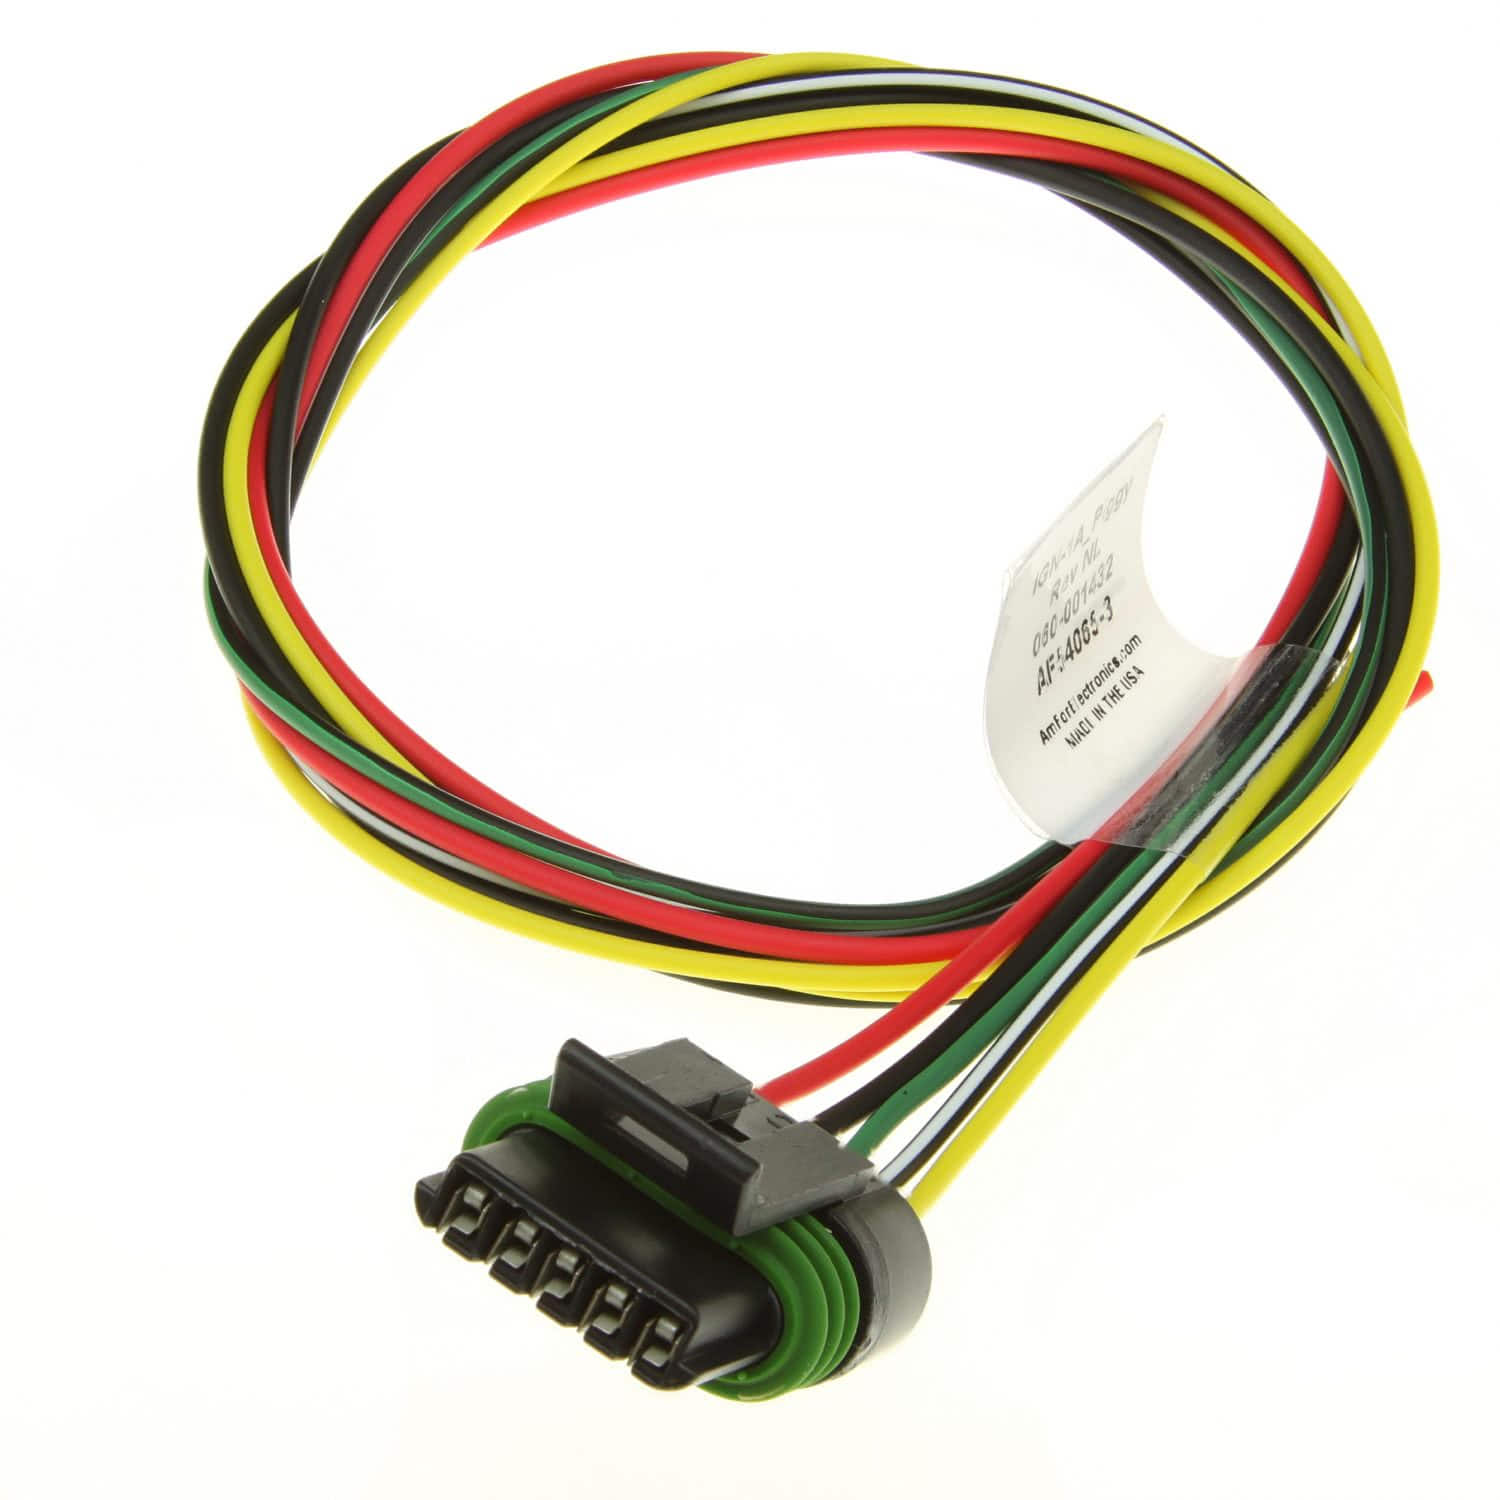 Ign1a Smart Coil 19a Igbt 250hp Per Cylinder With Long Spark Duration 7mge Wiring Harness Electrical